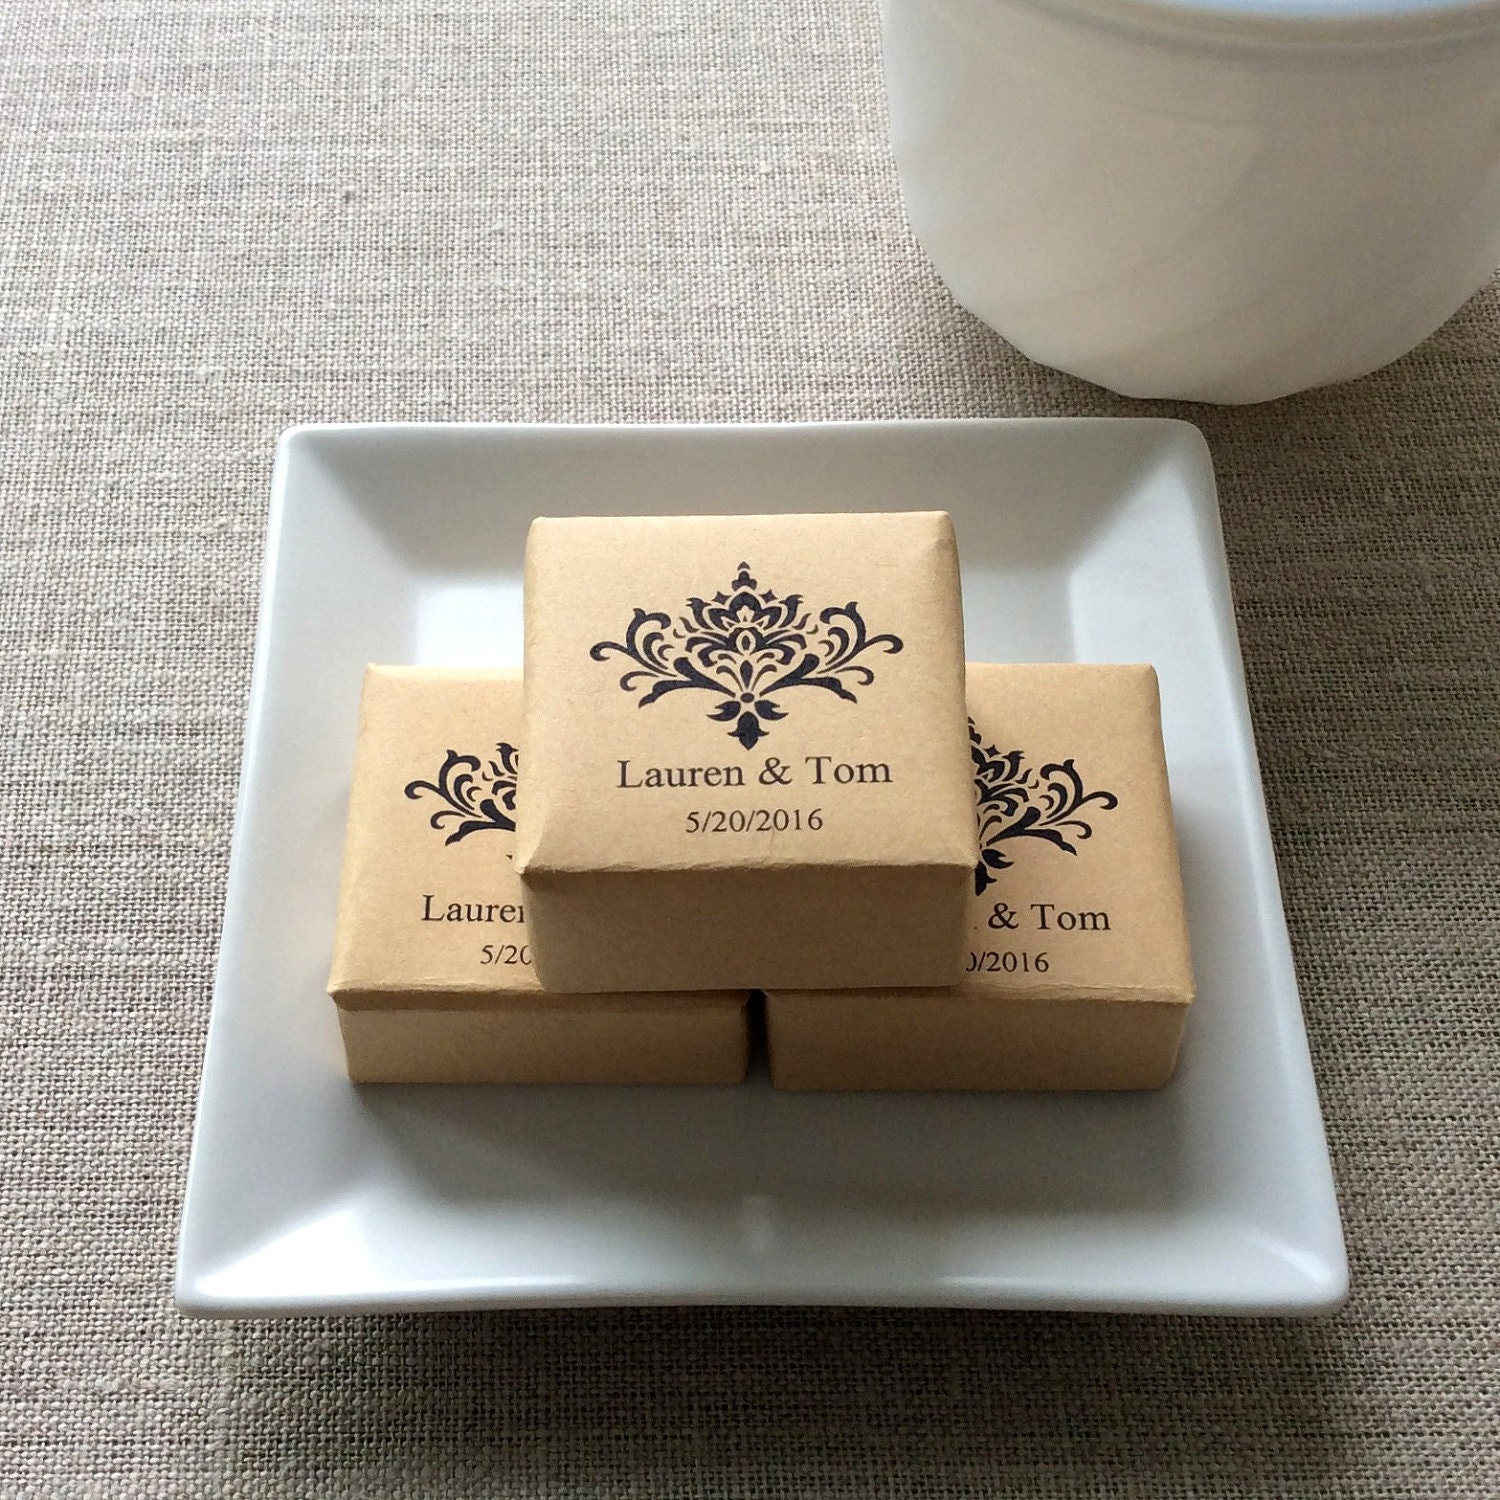 50 Personalized Mini Soap Favors, Damask wedding soap favors, personalized wedding favors, soap wedding favors, damask favors